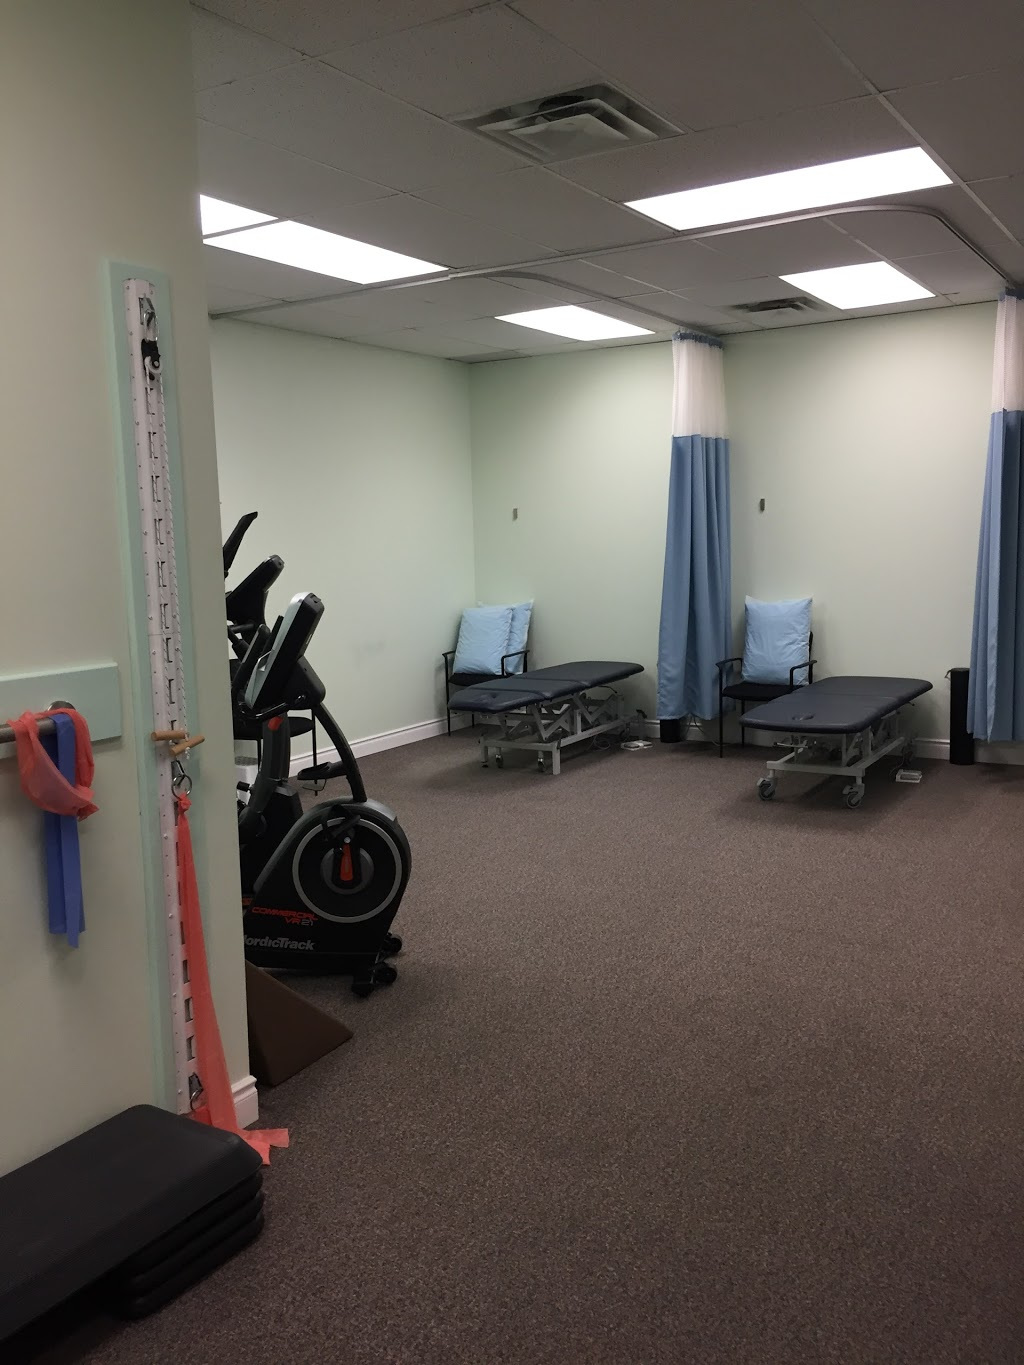 King & Wilson Physiotherapy & Rehab Clinic   health   595 King St E Unit #3, Oshawa, ON L1H 1G3, Canada   9055763888 OR +1 905-576-3888